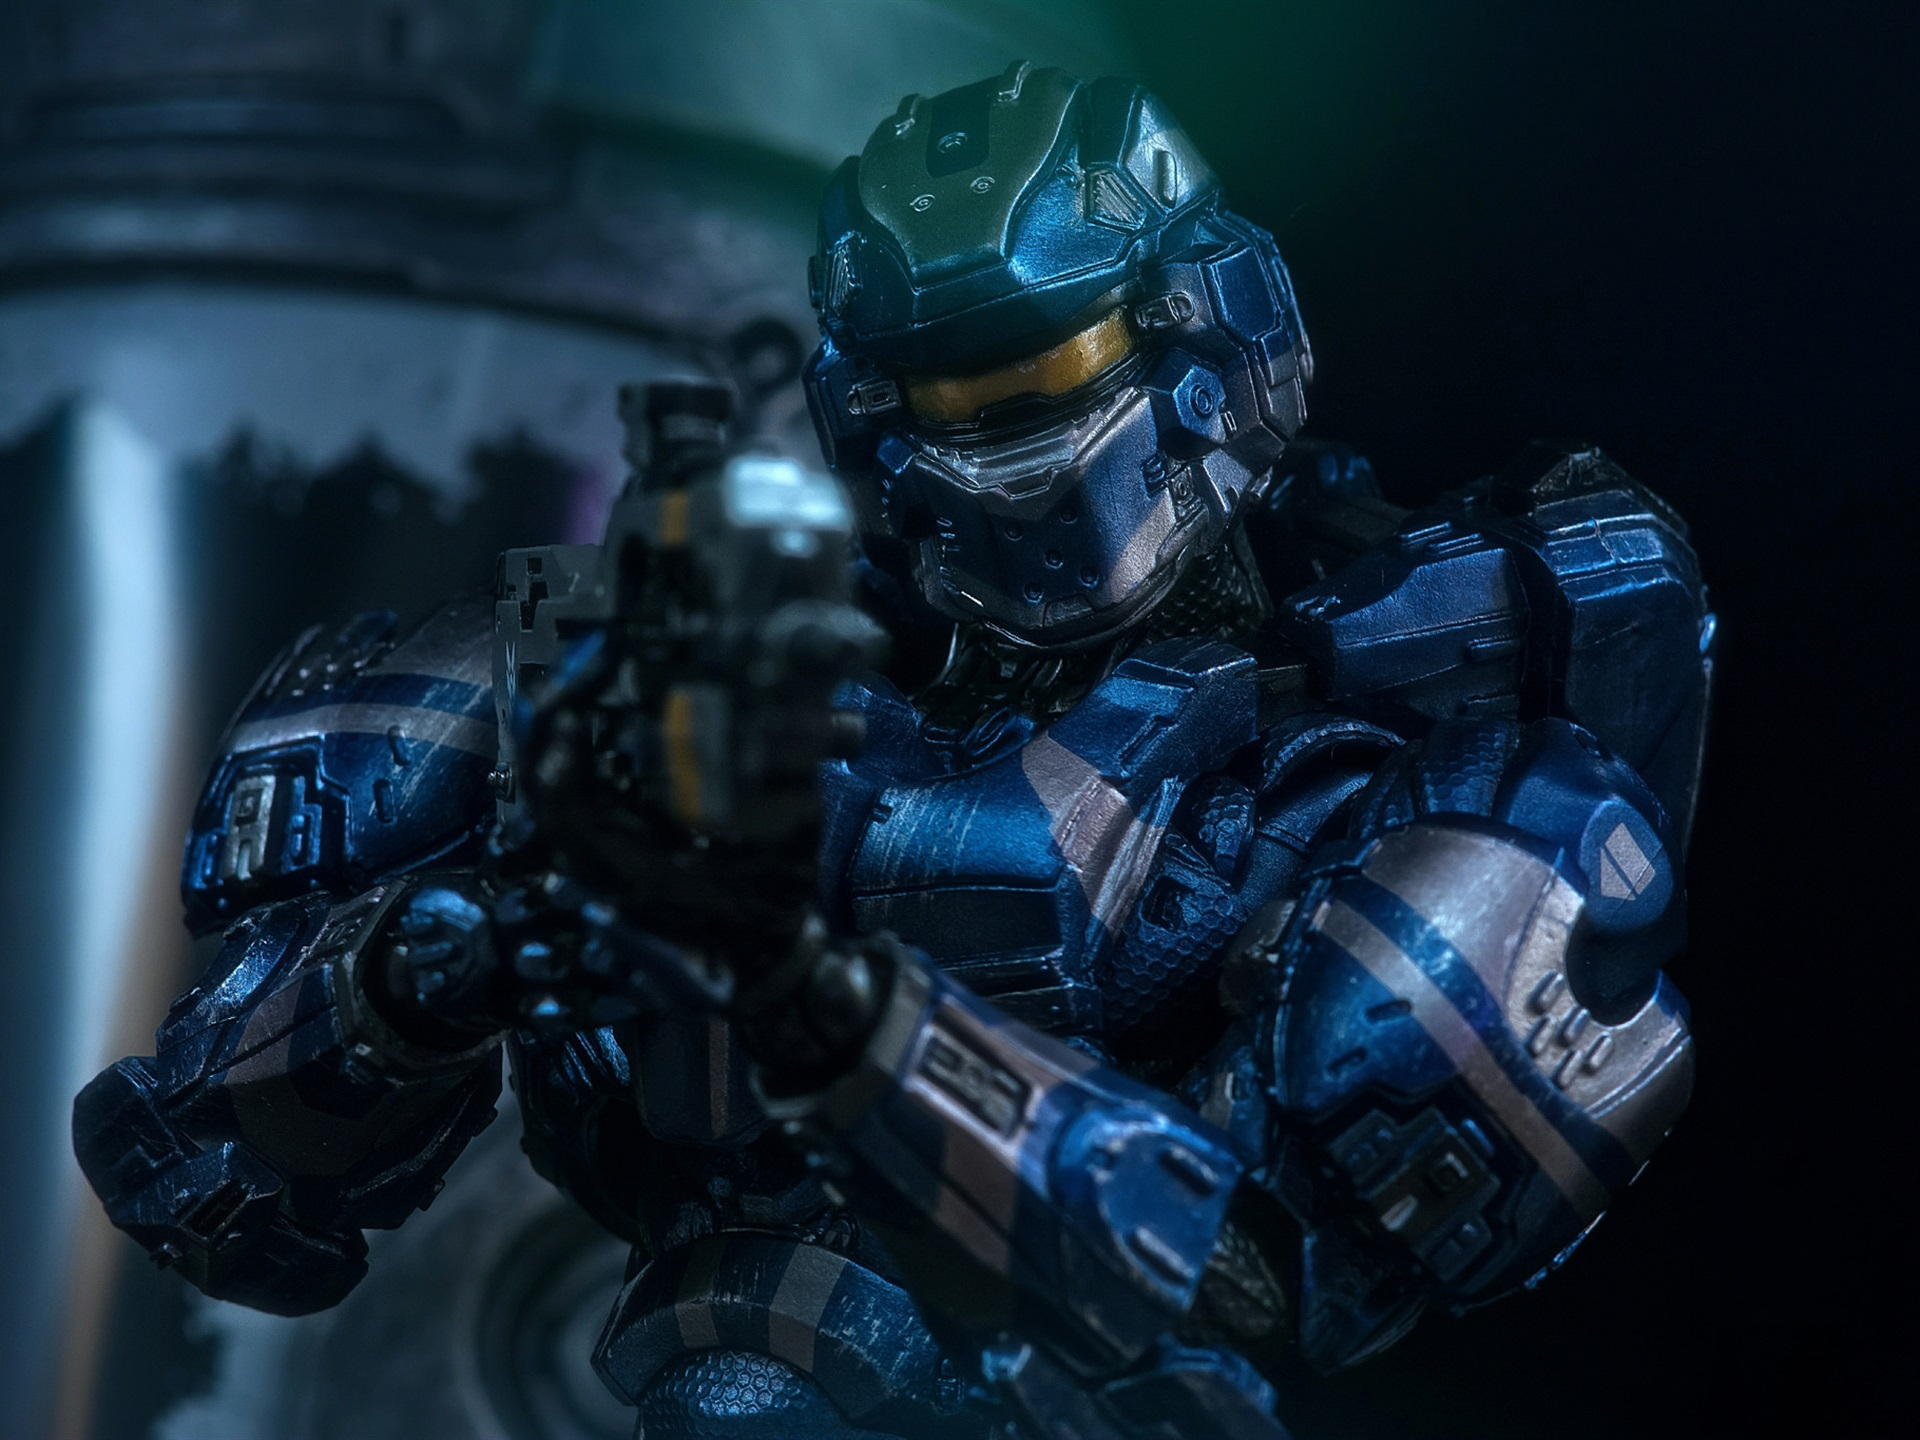 Wallpaper Halo 4, armor, soldier 1920x1440 HD Picture, Image